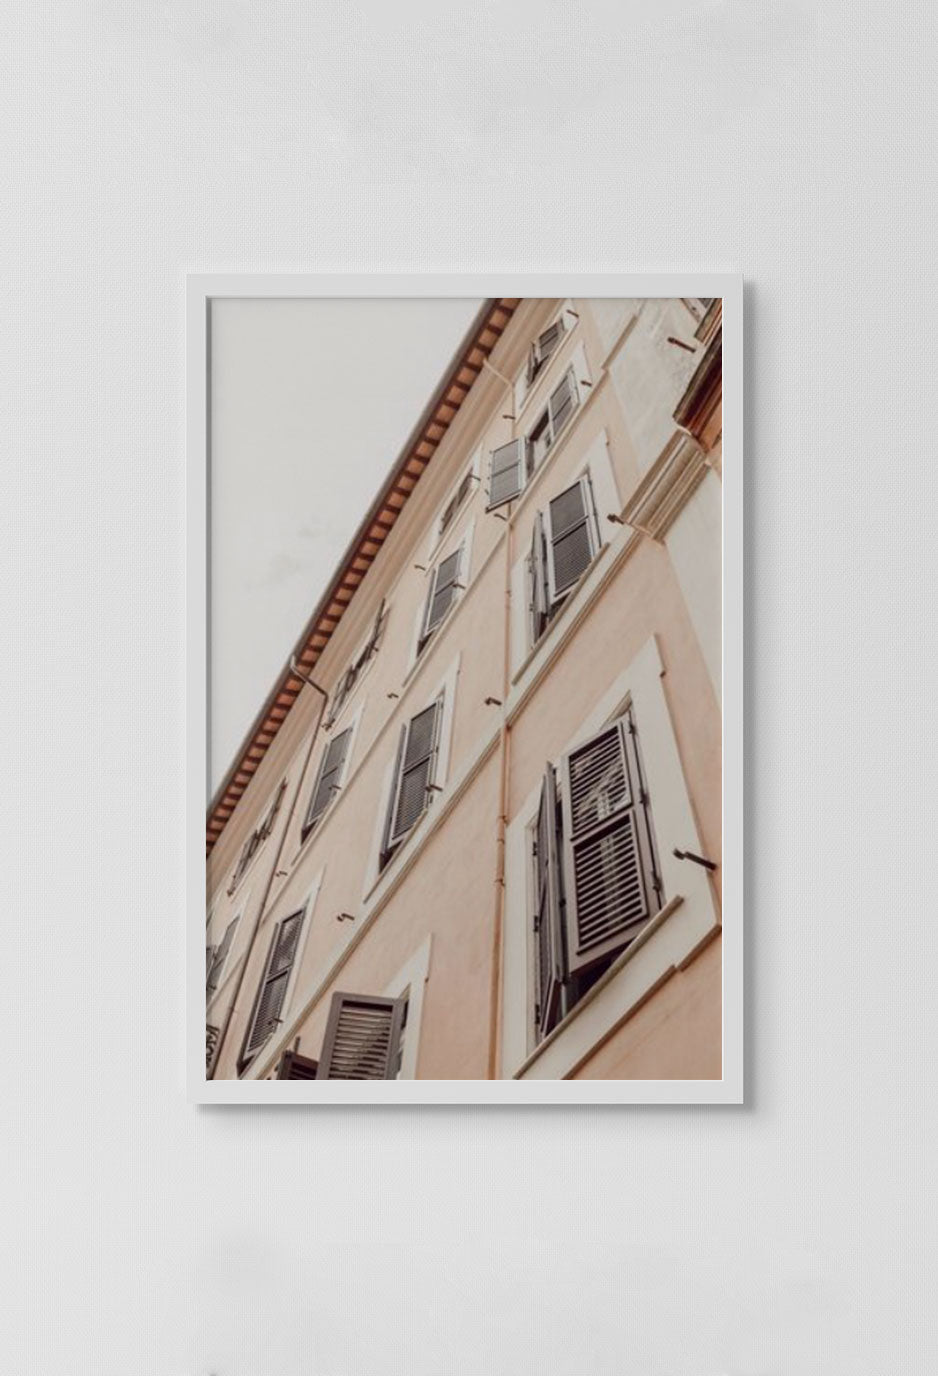 image of photograph of several French windows with windows open and sky in background in white frame on white wall.